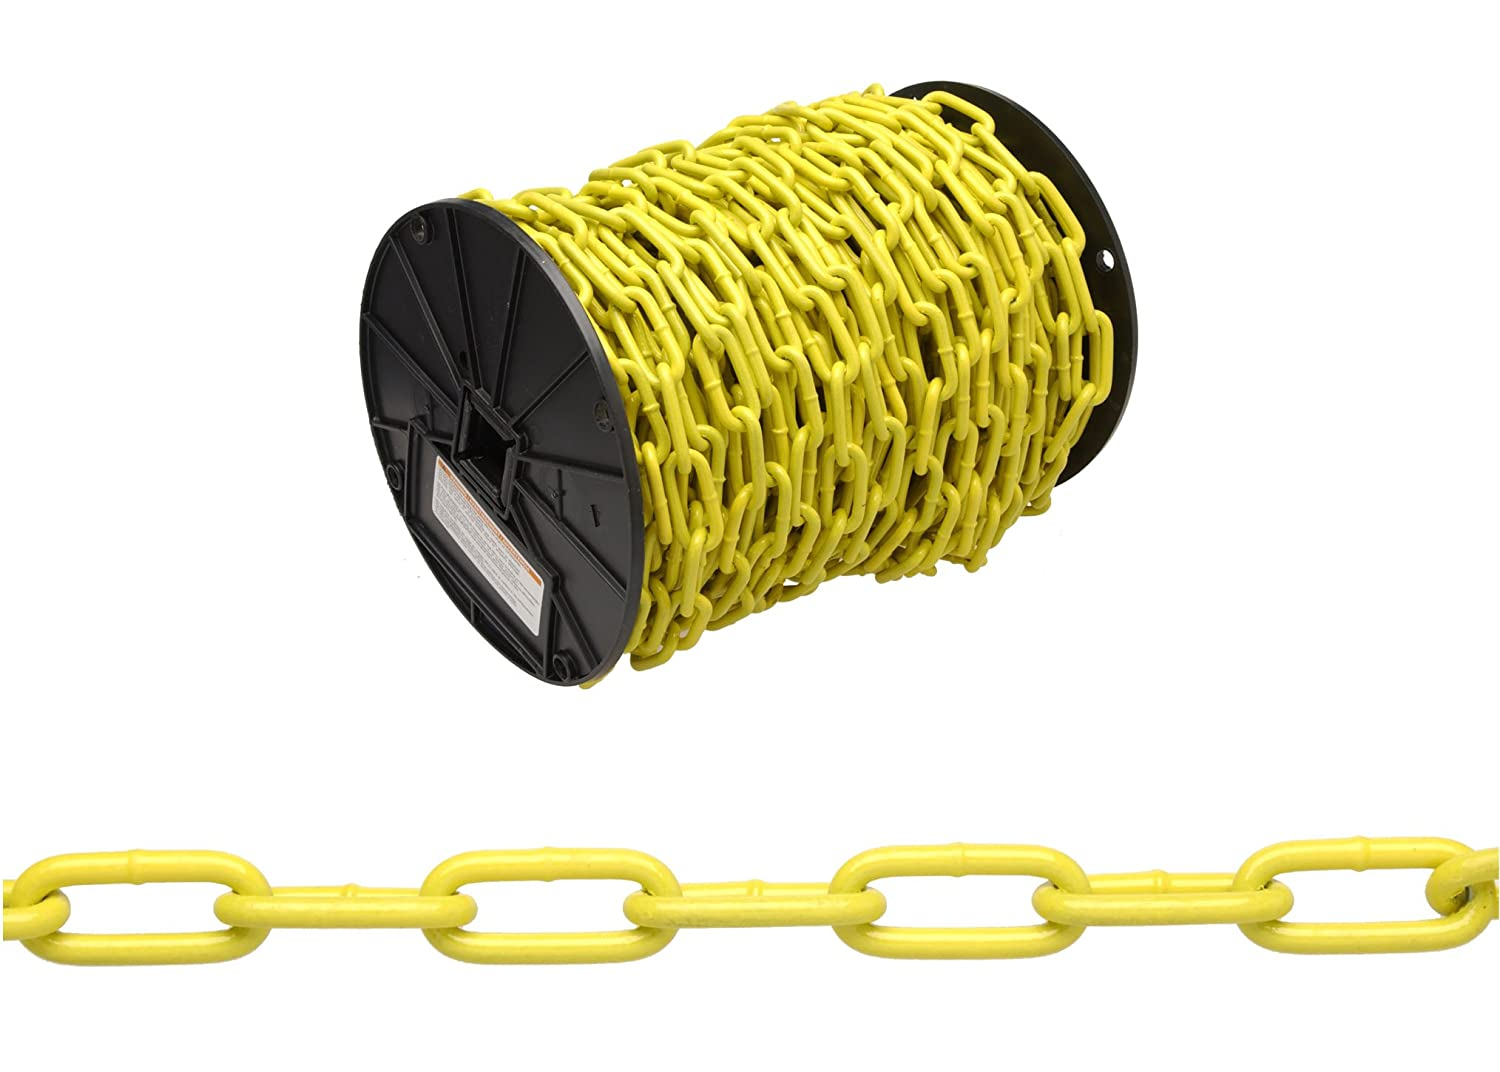 CAMPBELL PD0722627 Low Carbon Steel Straight Link Coil Chain, Yellow Polycoated, 2/0 Trade, 0.19-Inch Diameter, 520-Pound Load Capacity, 120 Feet Reel 0.19 Inch Diameter 520 lbs. Load Capacity